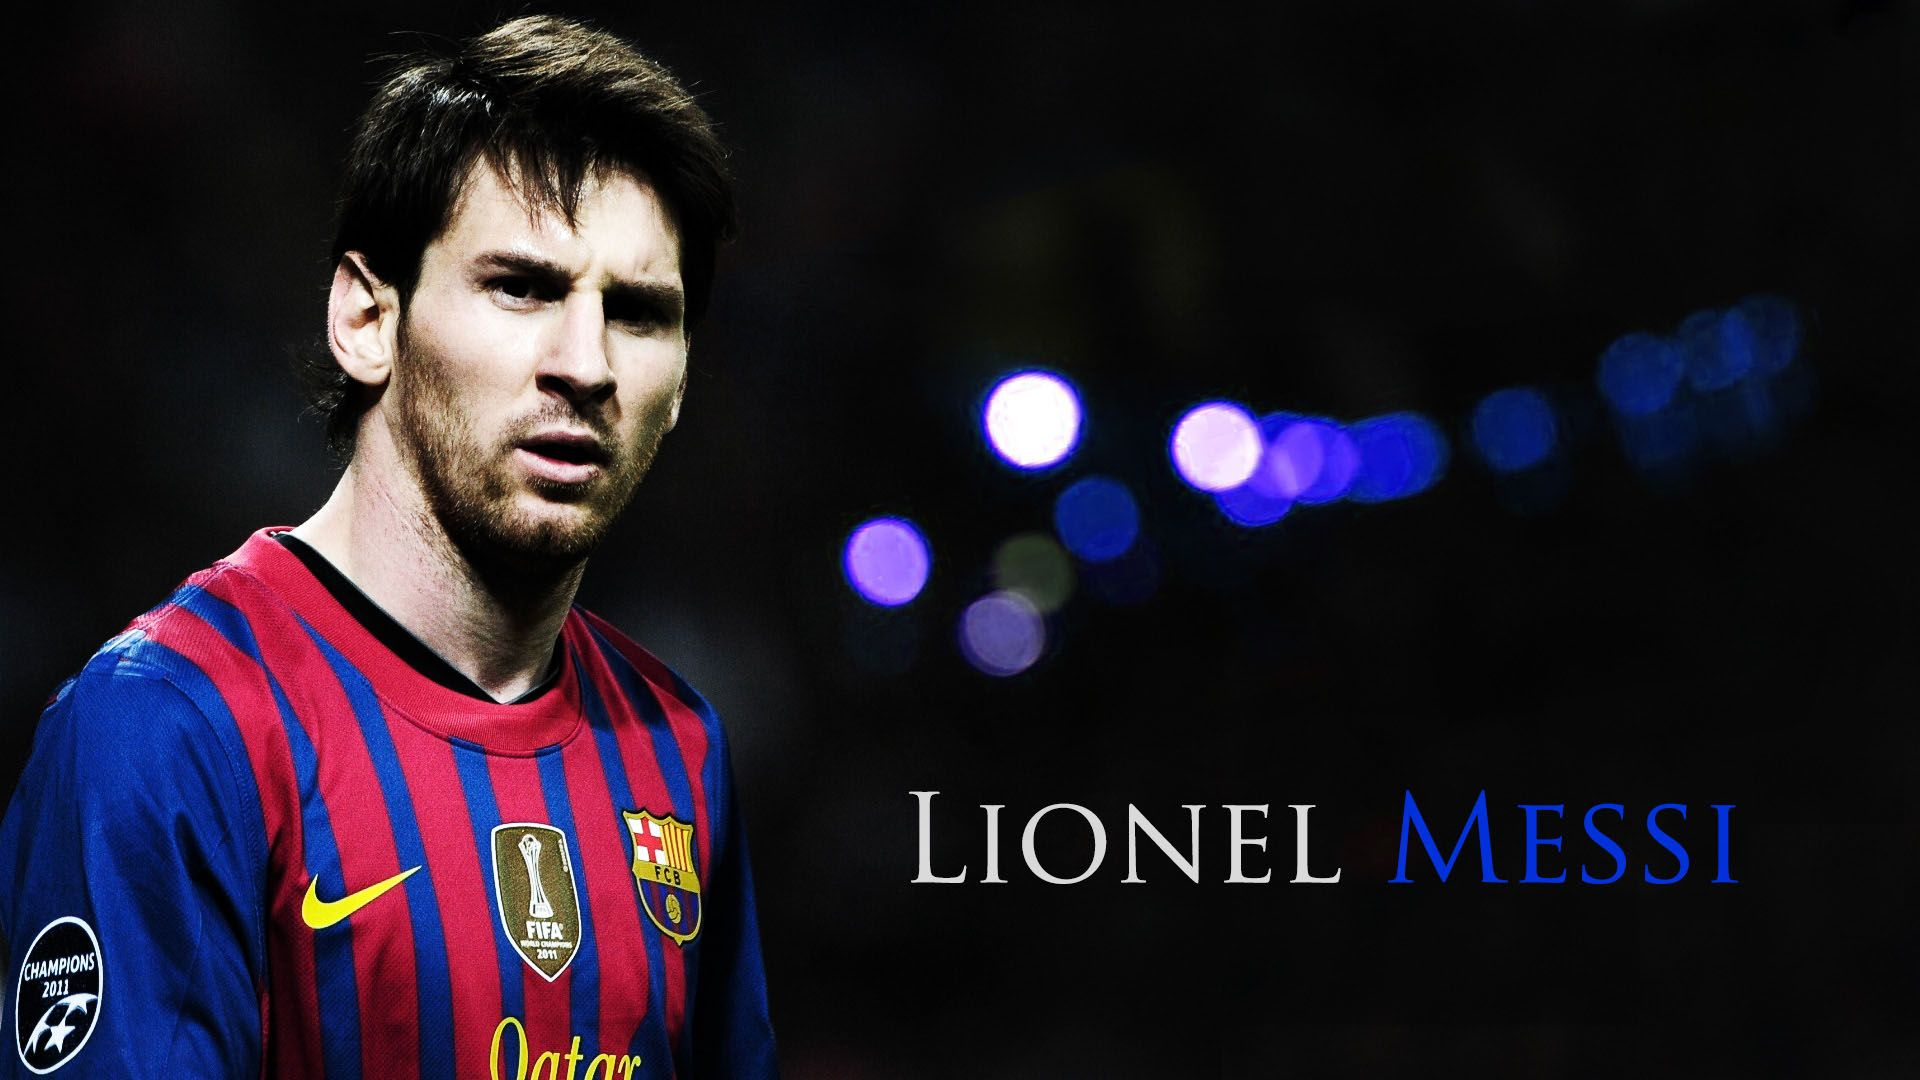 Messi wallpapers lionel messi wallpapers voltagebd Image collections